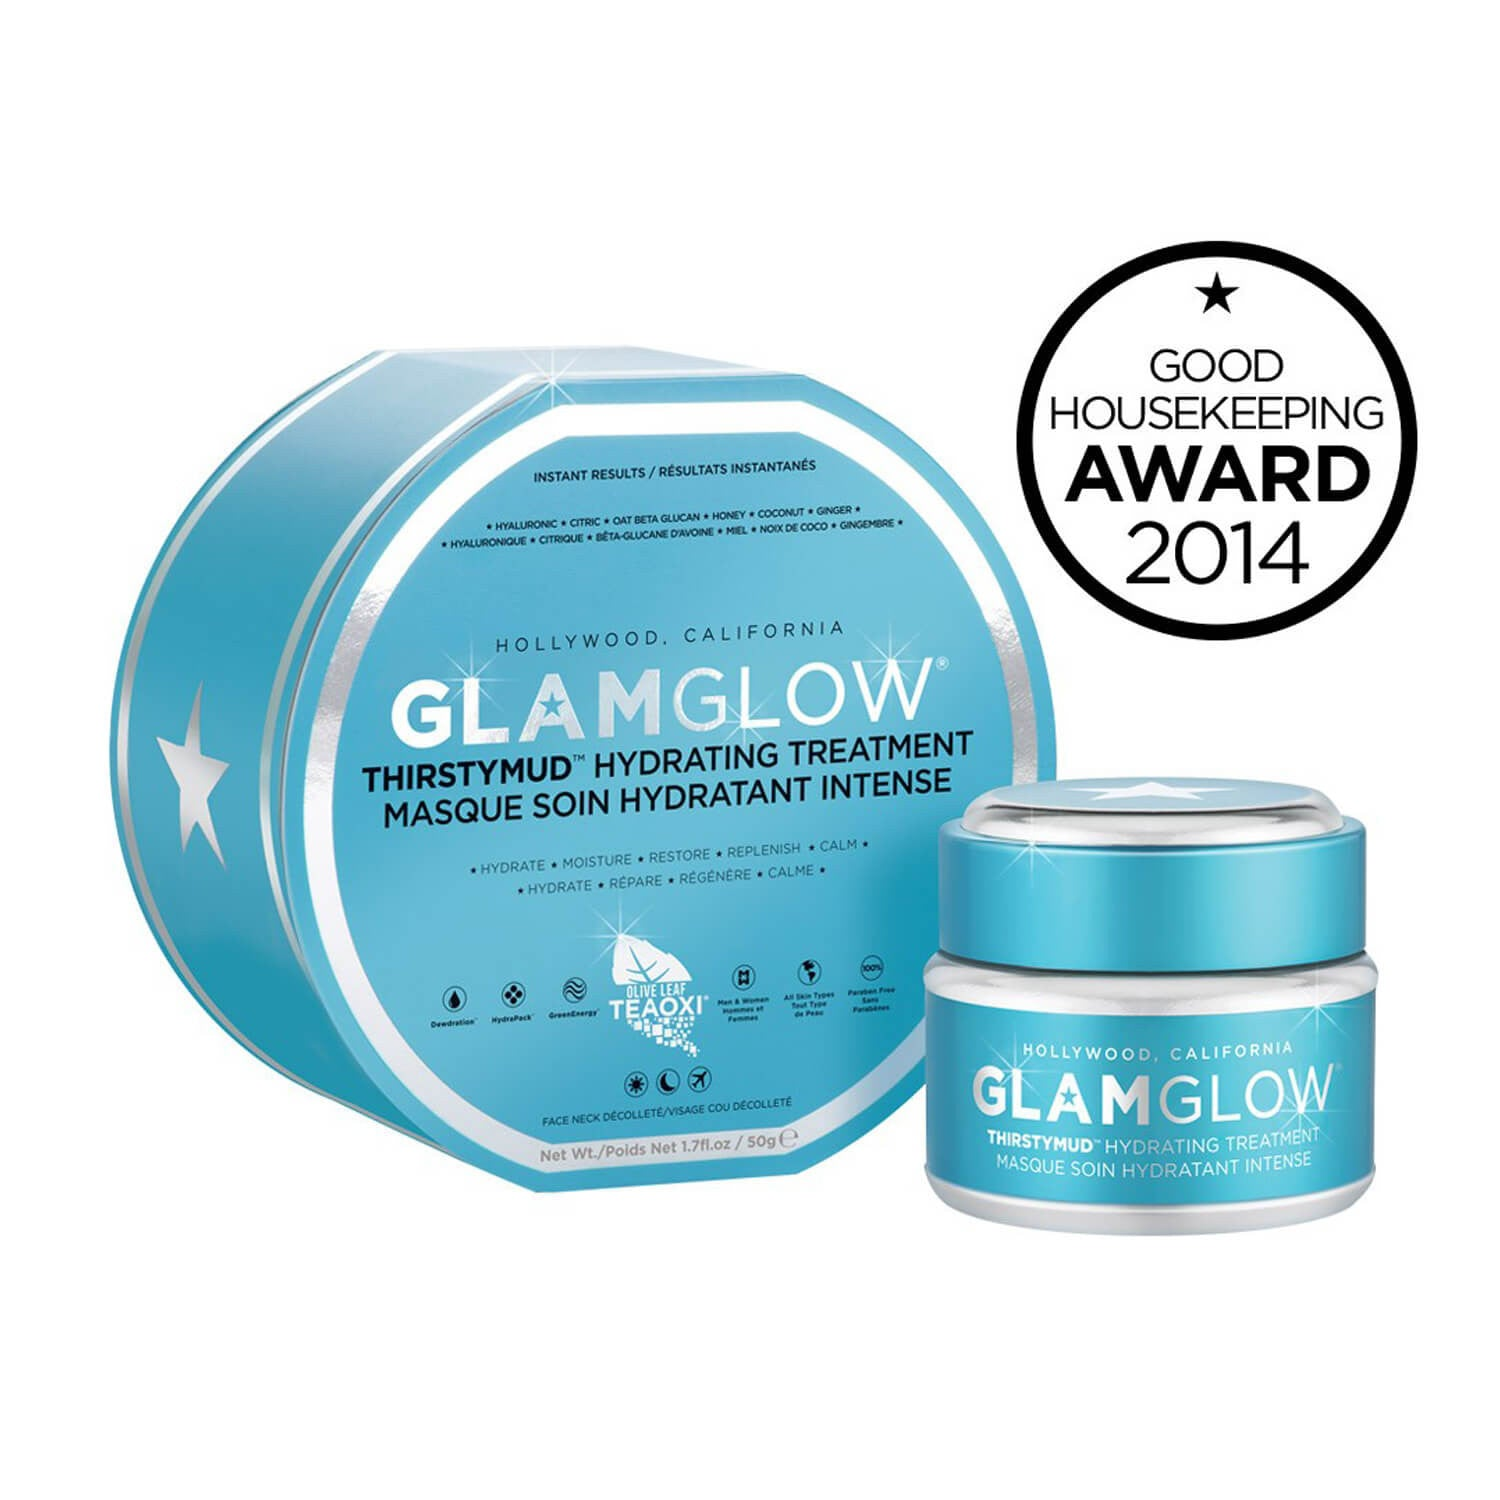 GLAMGLOW THIRSTYMUD HYDRATING TREATMENT 50g Box